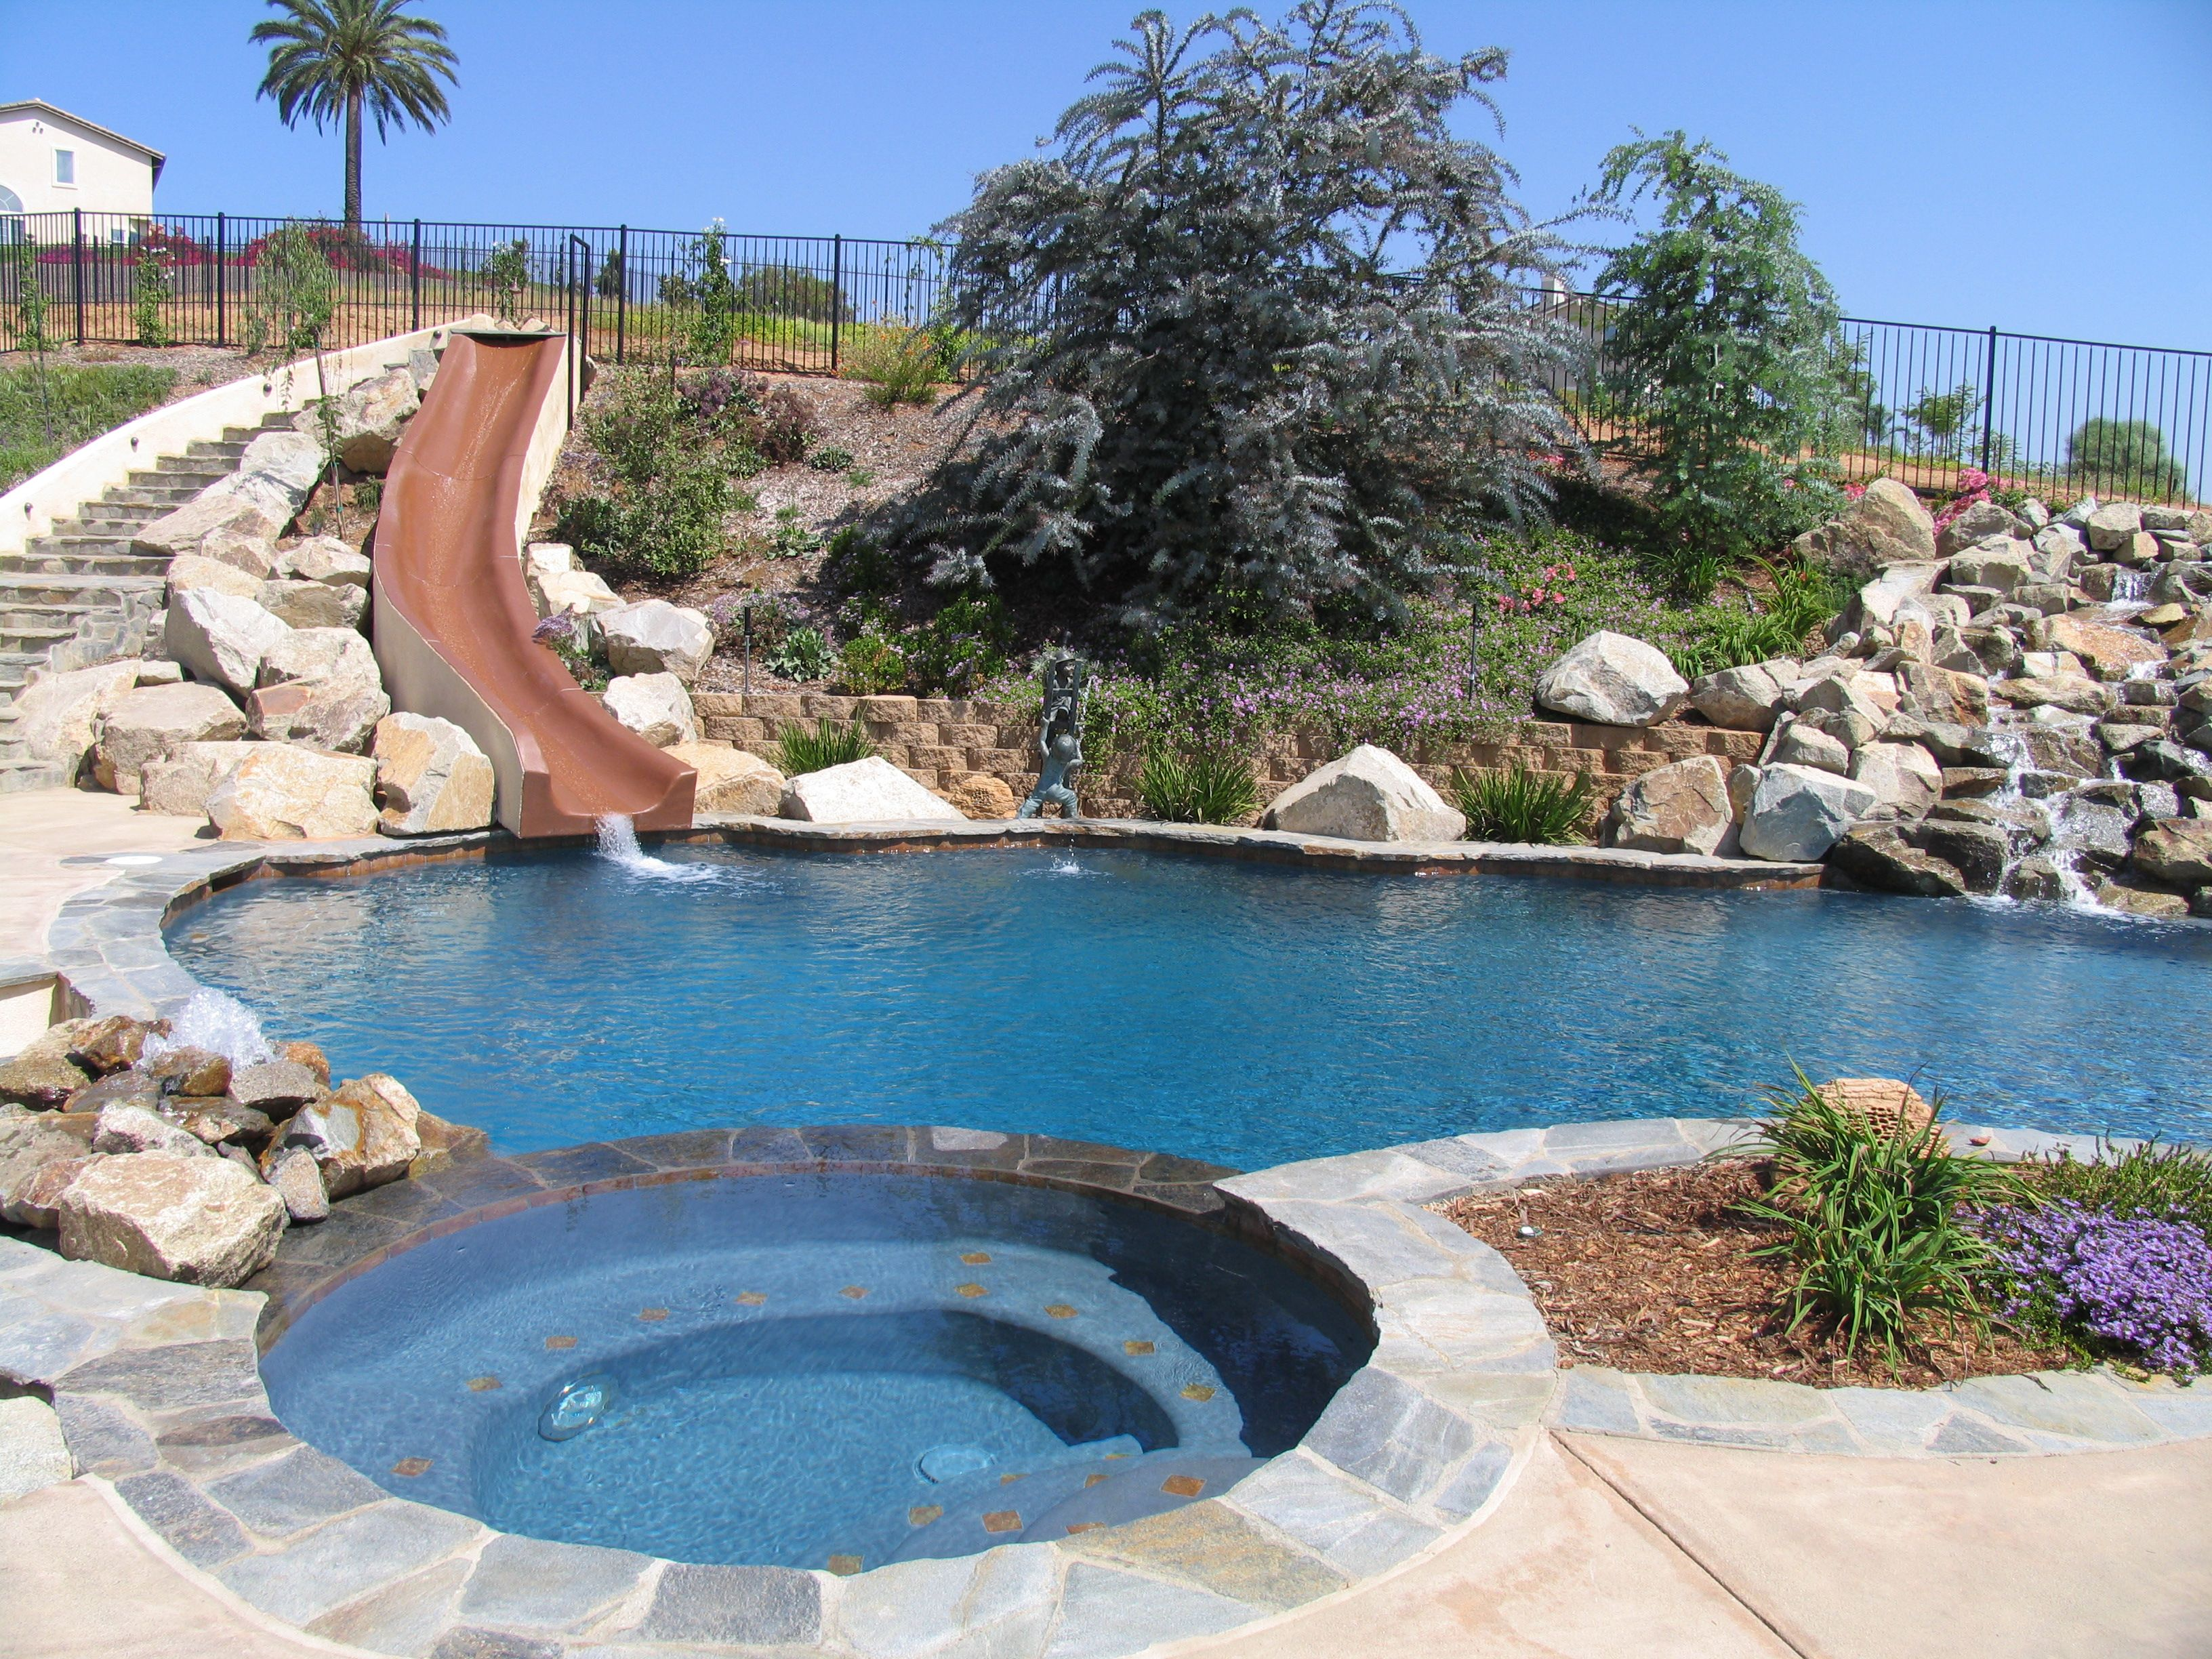 Swiming Pools Long Pool Slide With Rock Wall Design Also Oasis Pool Theme  And Mini Garden Besides Stainless Fence Pool Tubs Above Ground Liners  Backyard ...